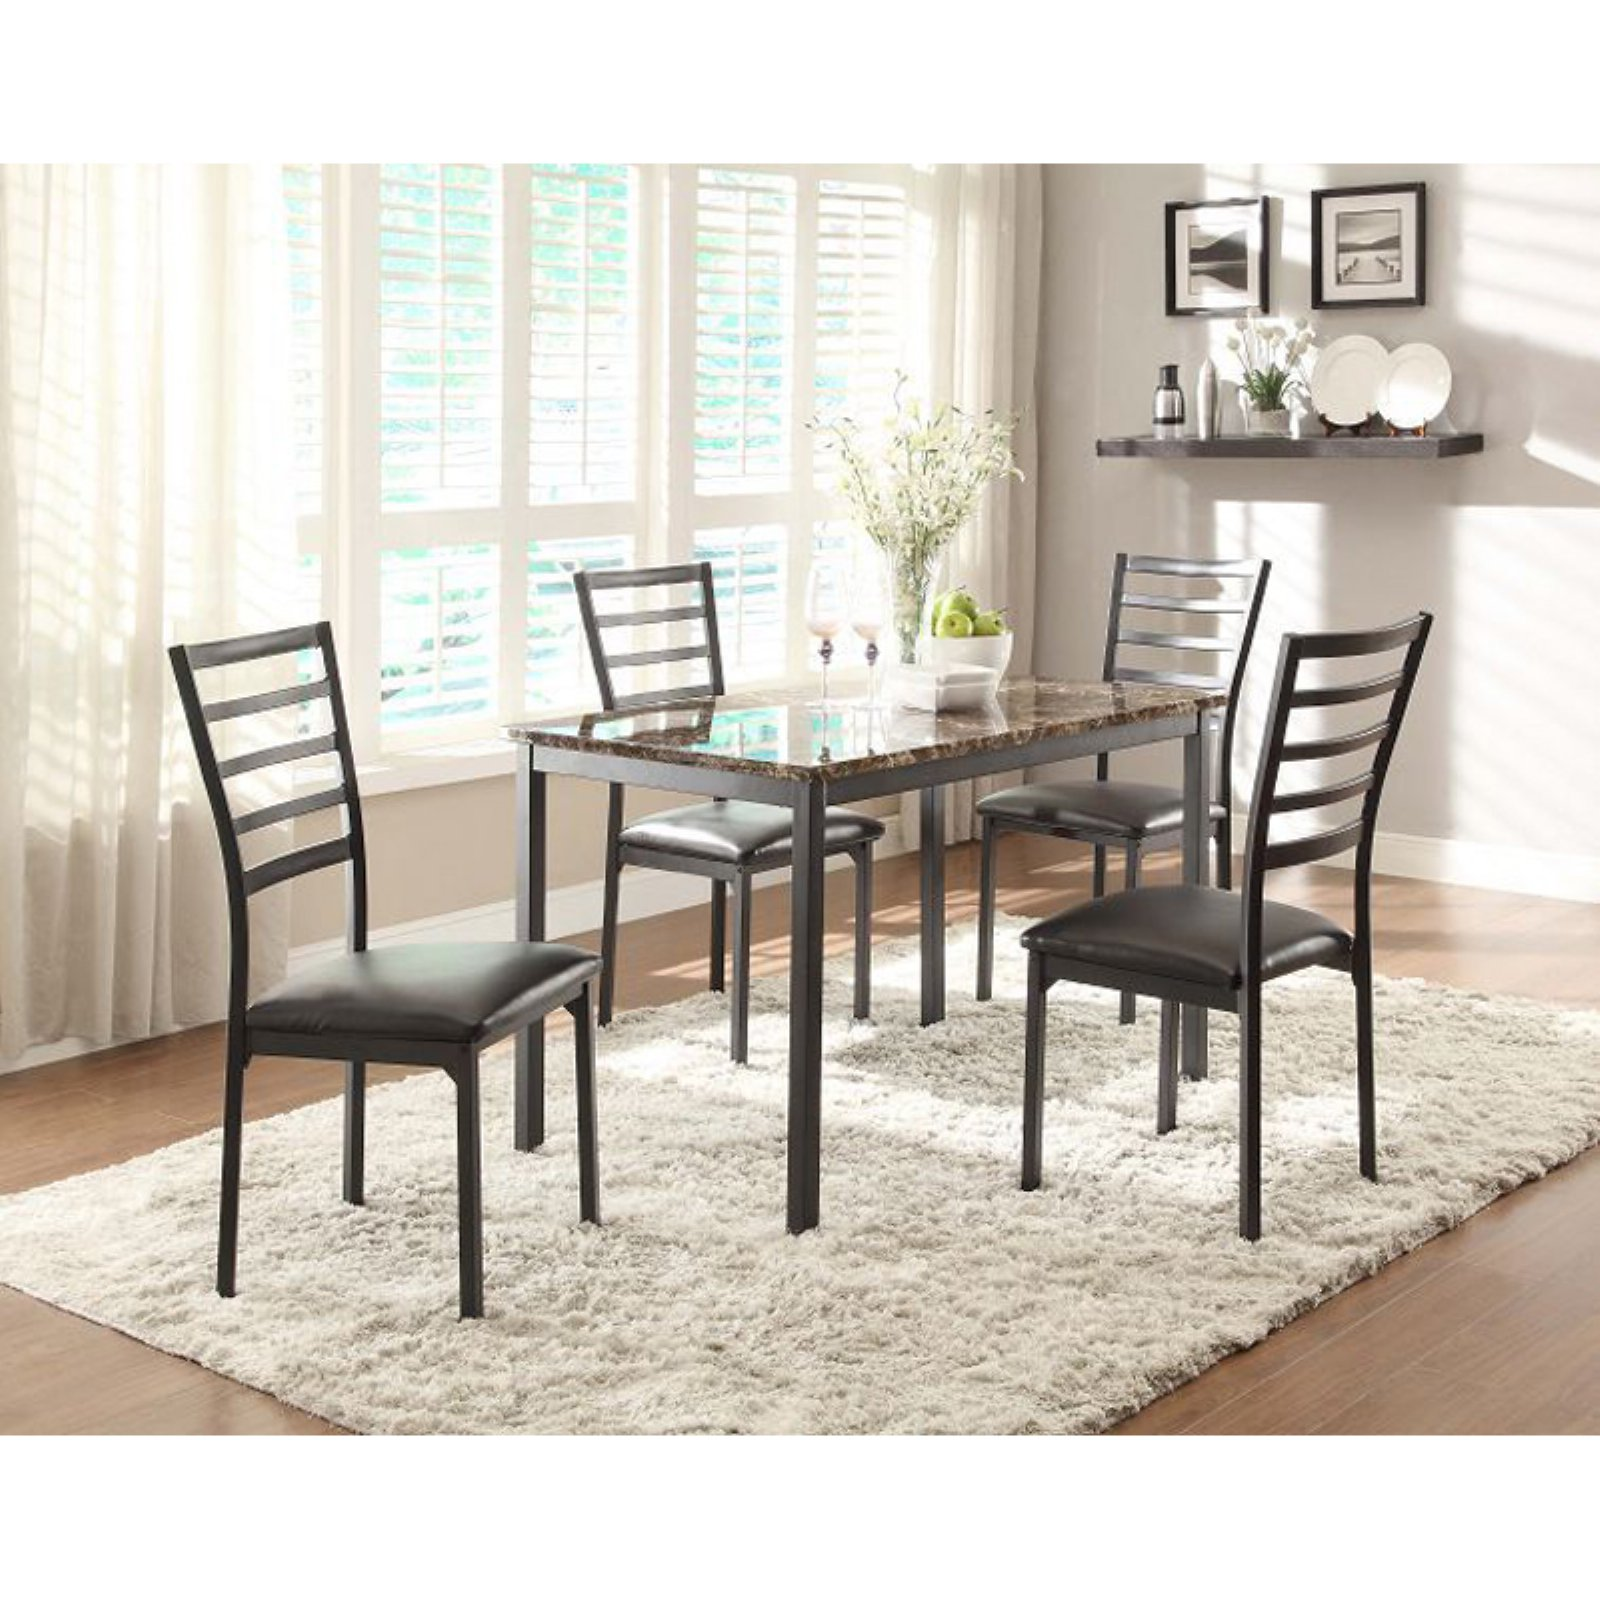 Chelsea Lane Hamilton Faux Marble Top Metal Dining Table